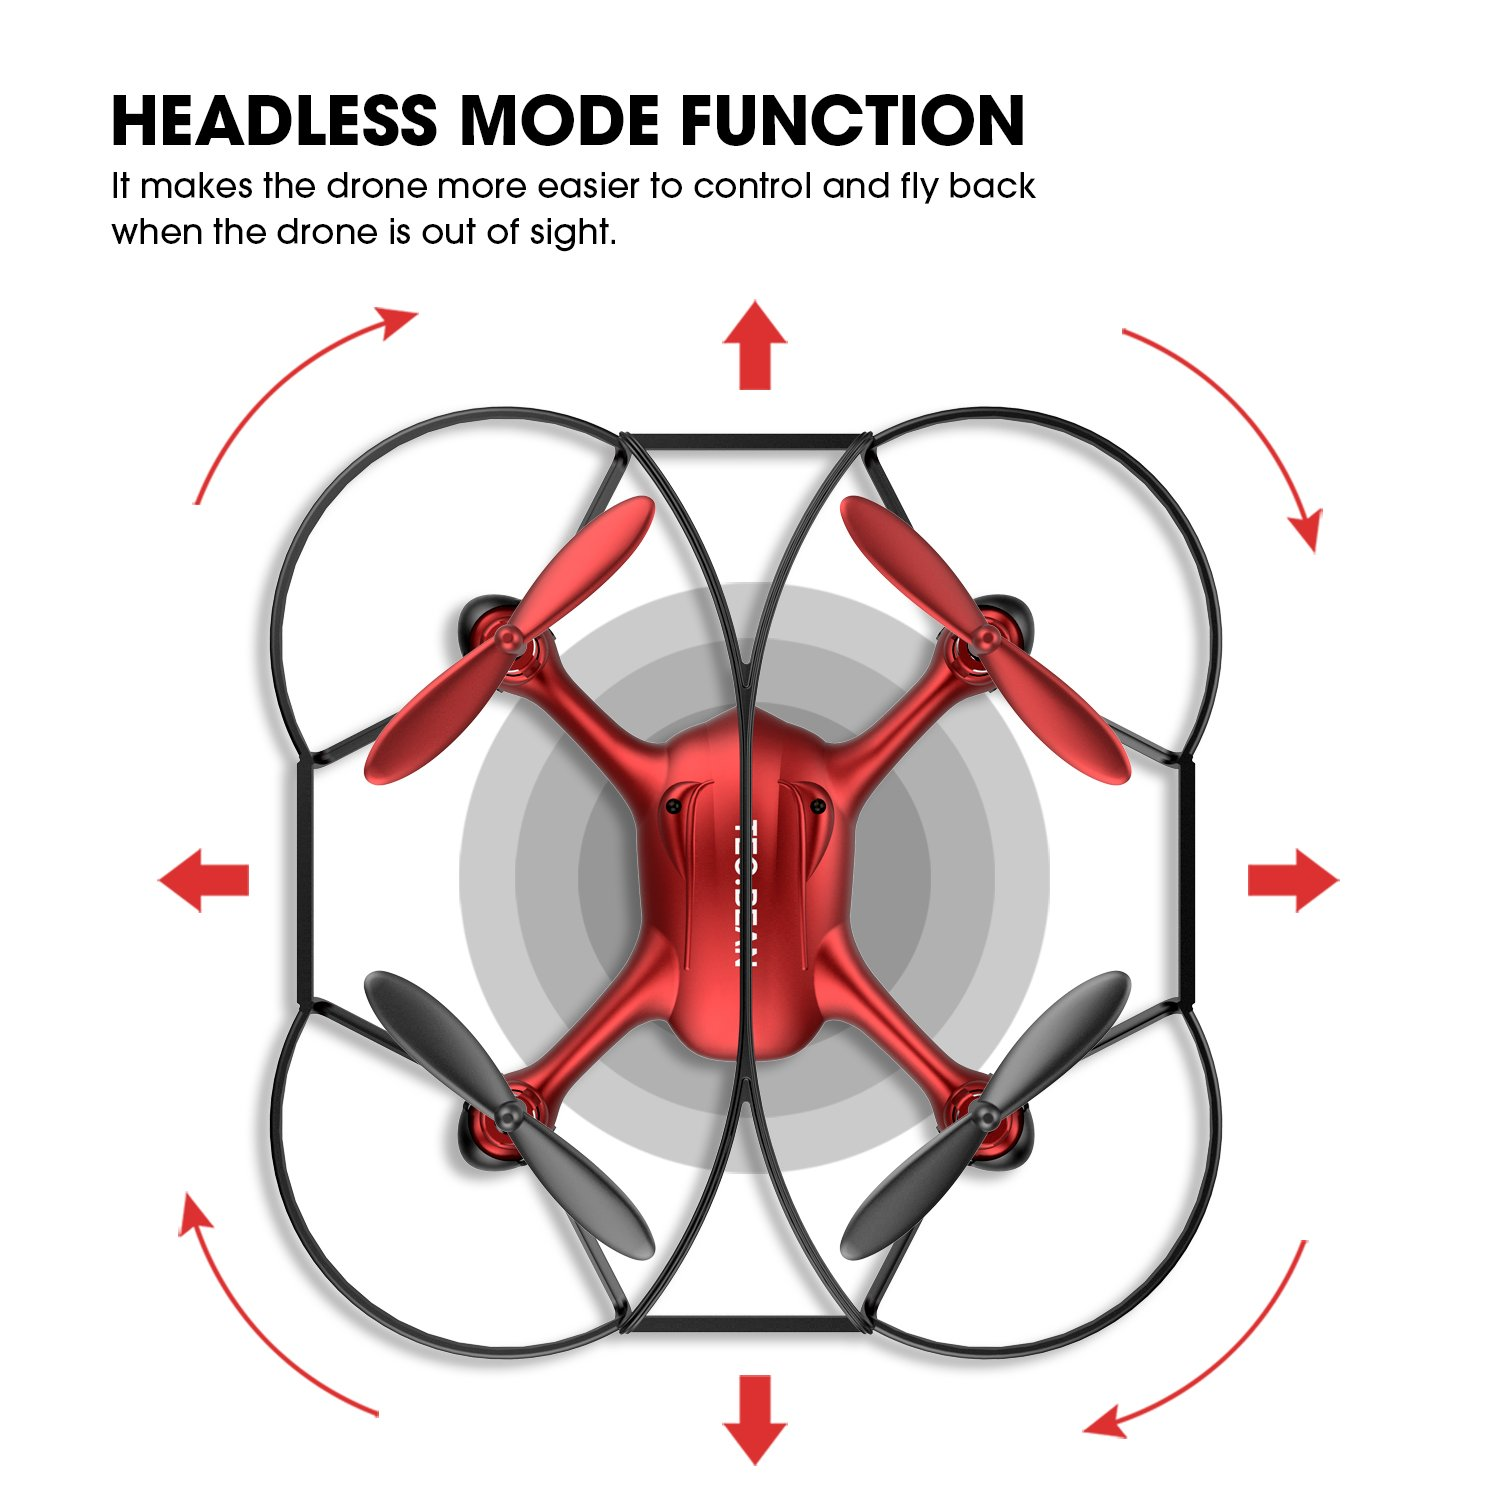 TEC.BEAN Mini Drone for Beginners Hovering Quadcopter with Altitude Hold Mode One Key Take Off Landing Return Home Entry Level for Kids by TEC.BEAN (Image #3)